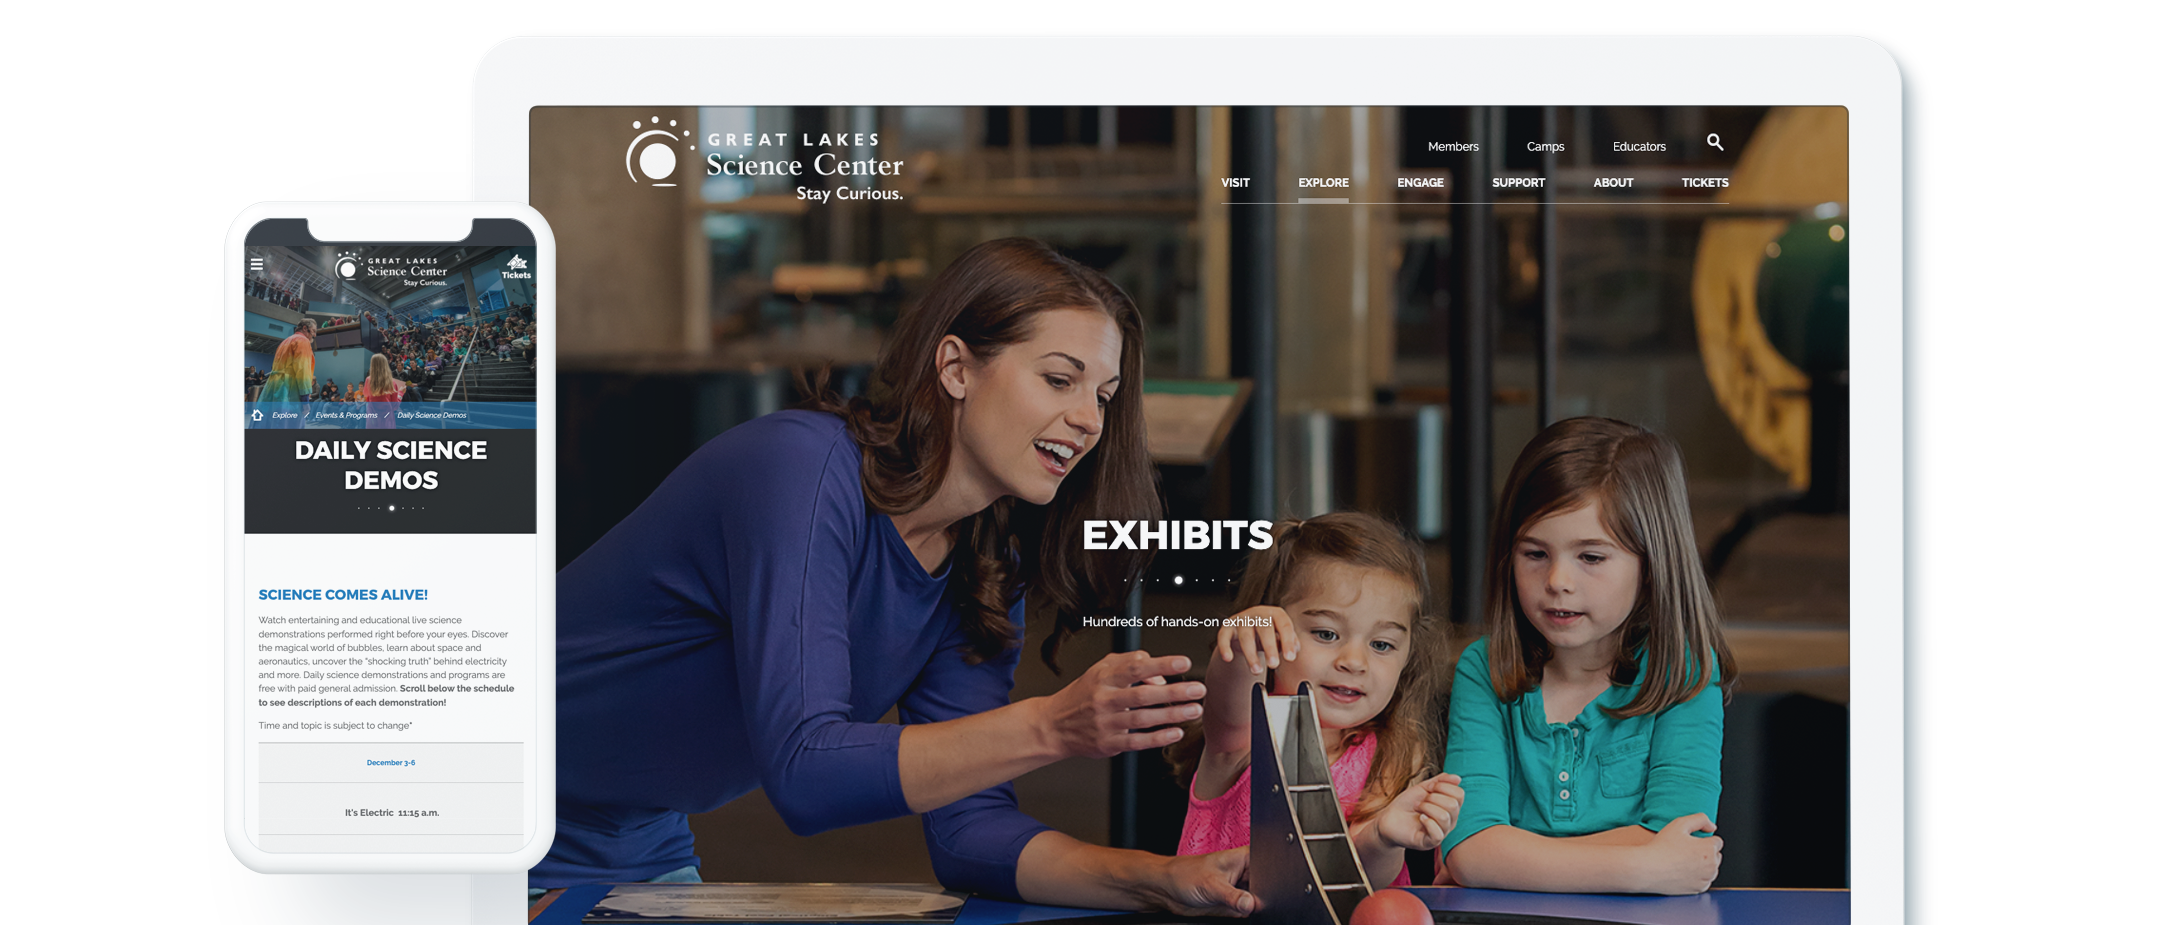 Great Lakes Science Center Website Design